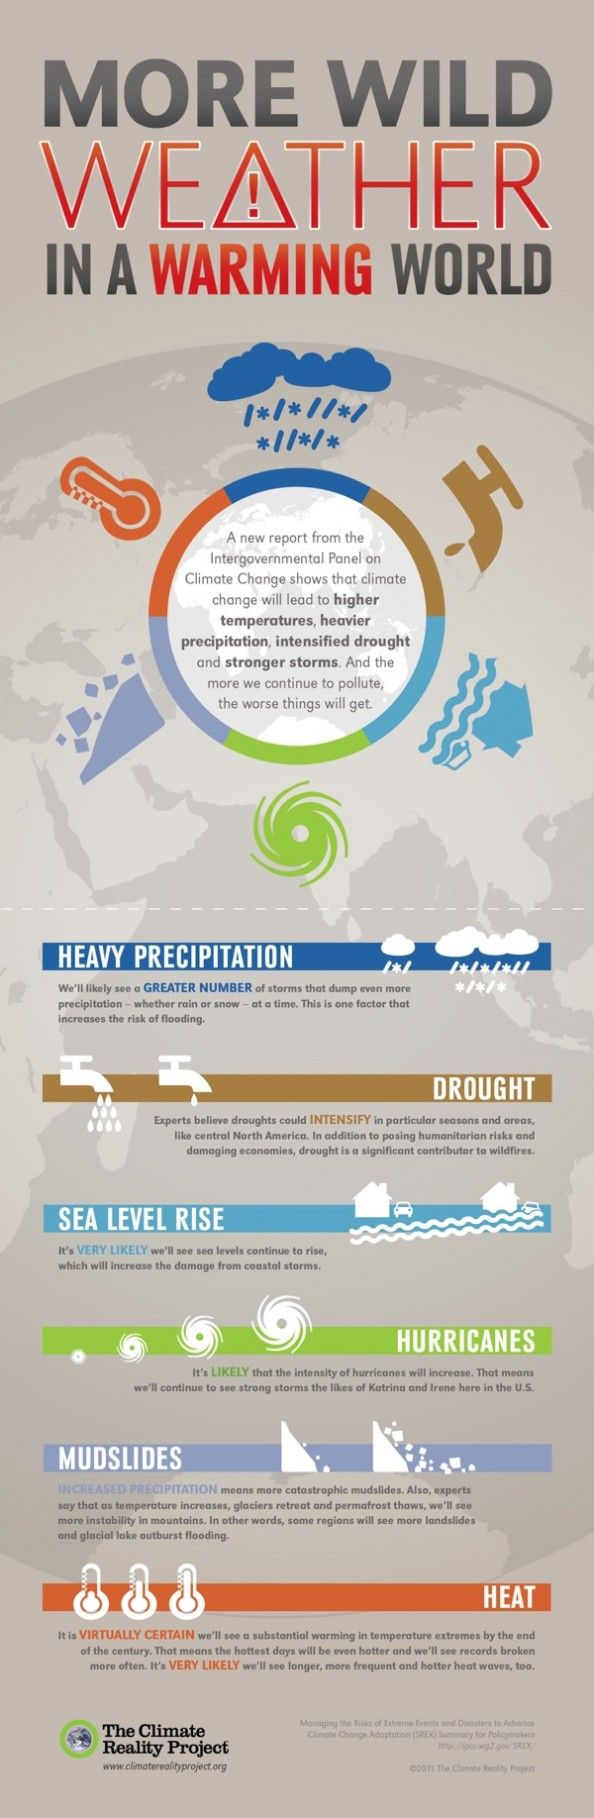 Best Images About Extreme Weather Th Grade On Pinterest - Usa extreme weather map